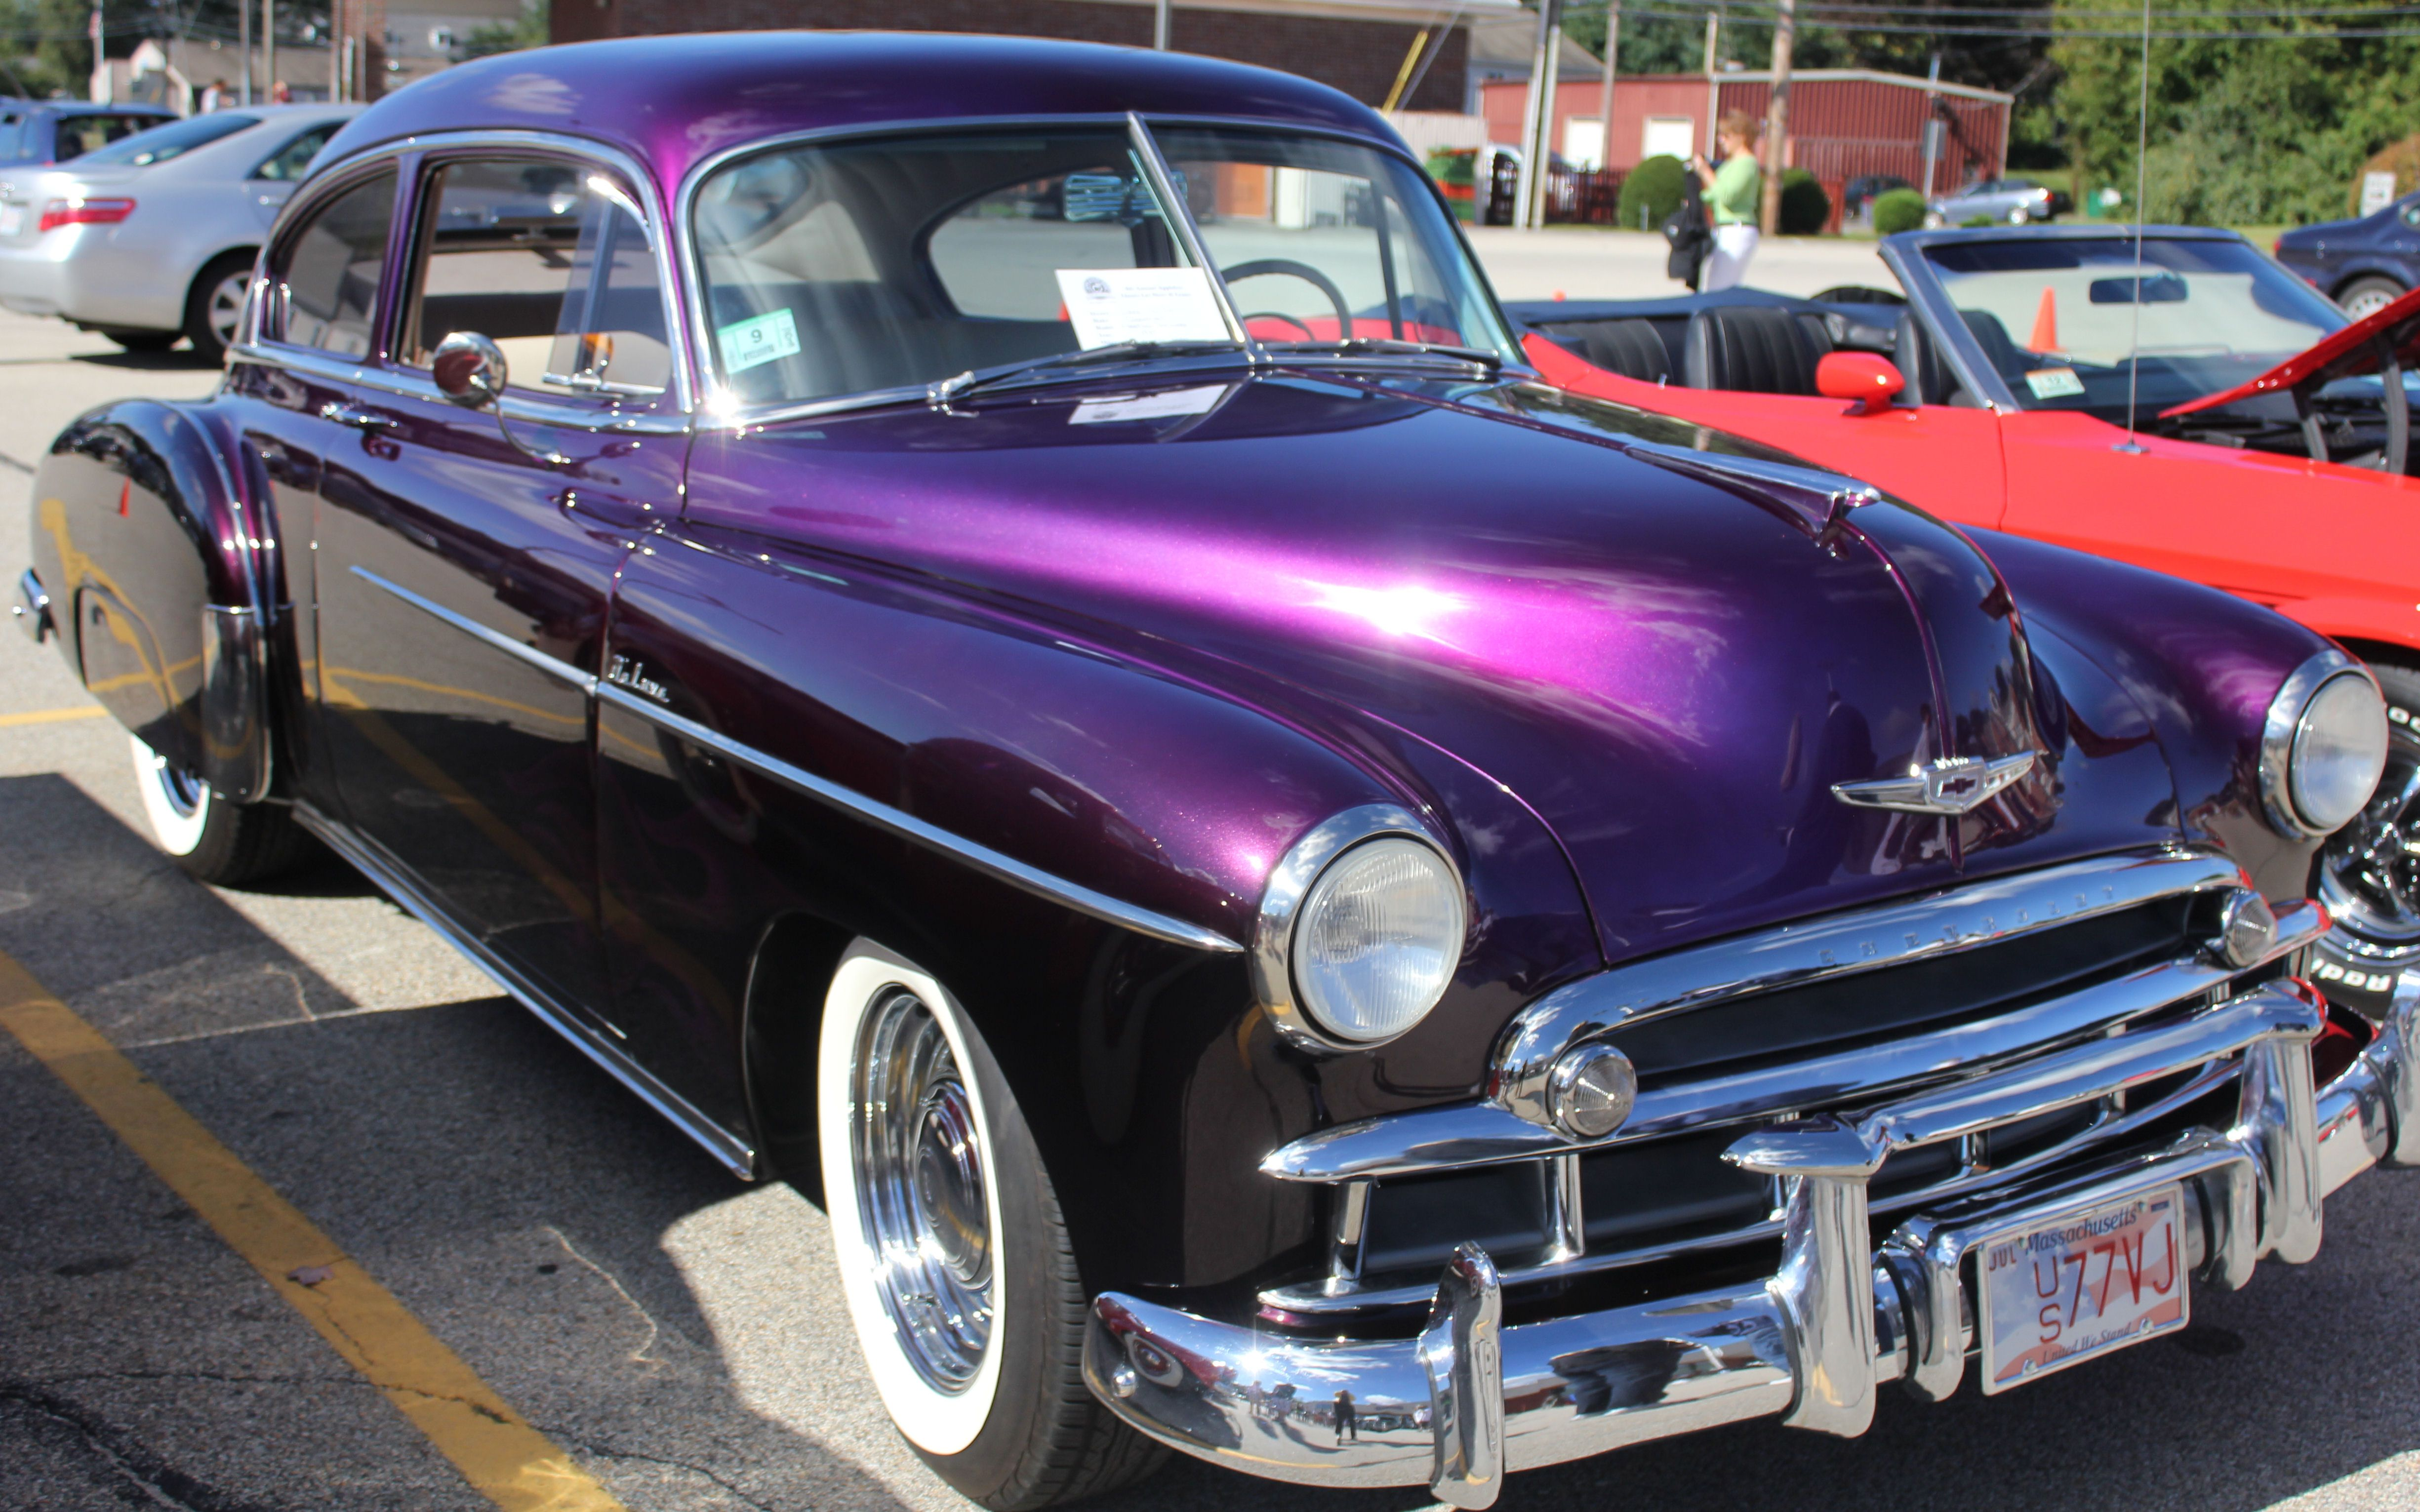 classic show cars - Google Search